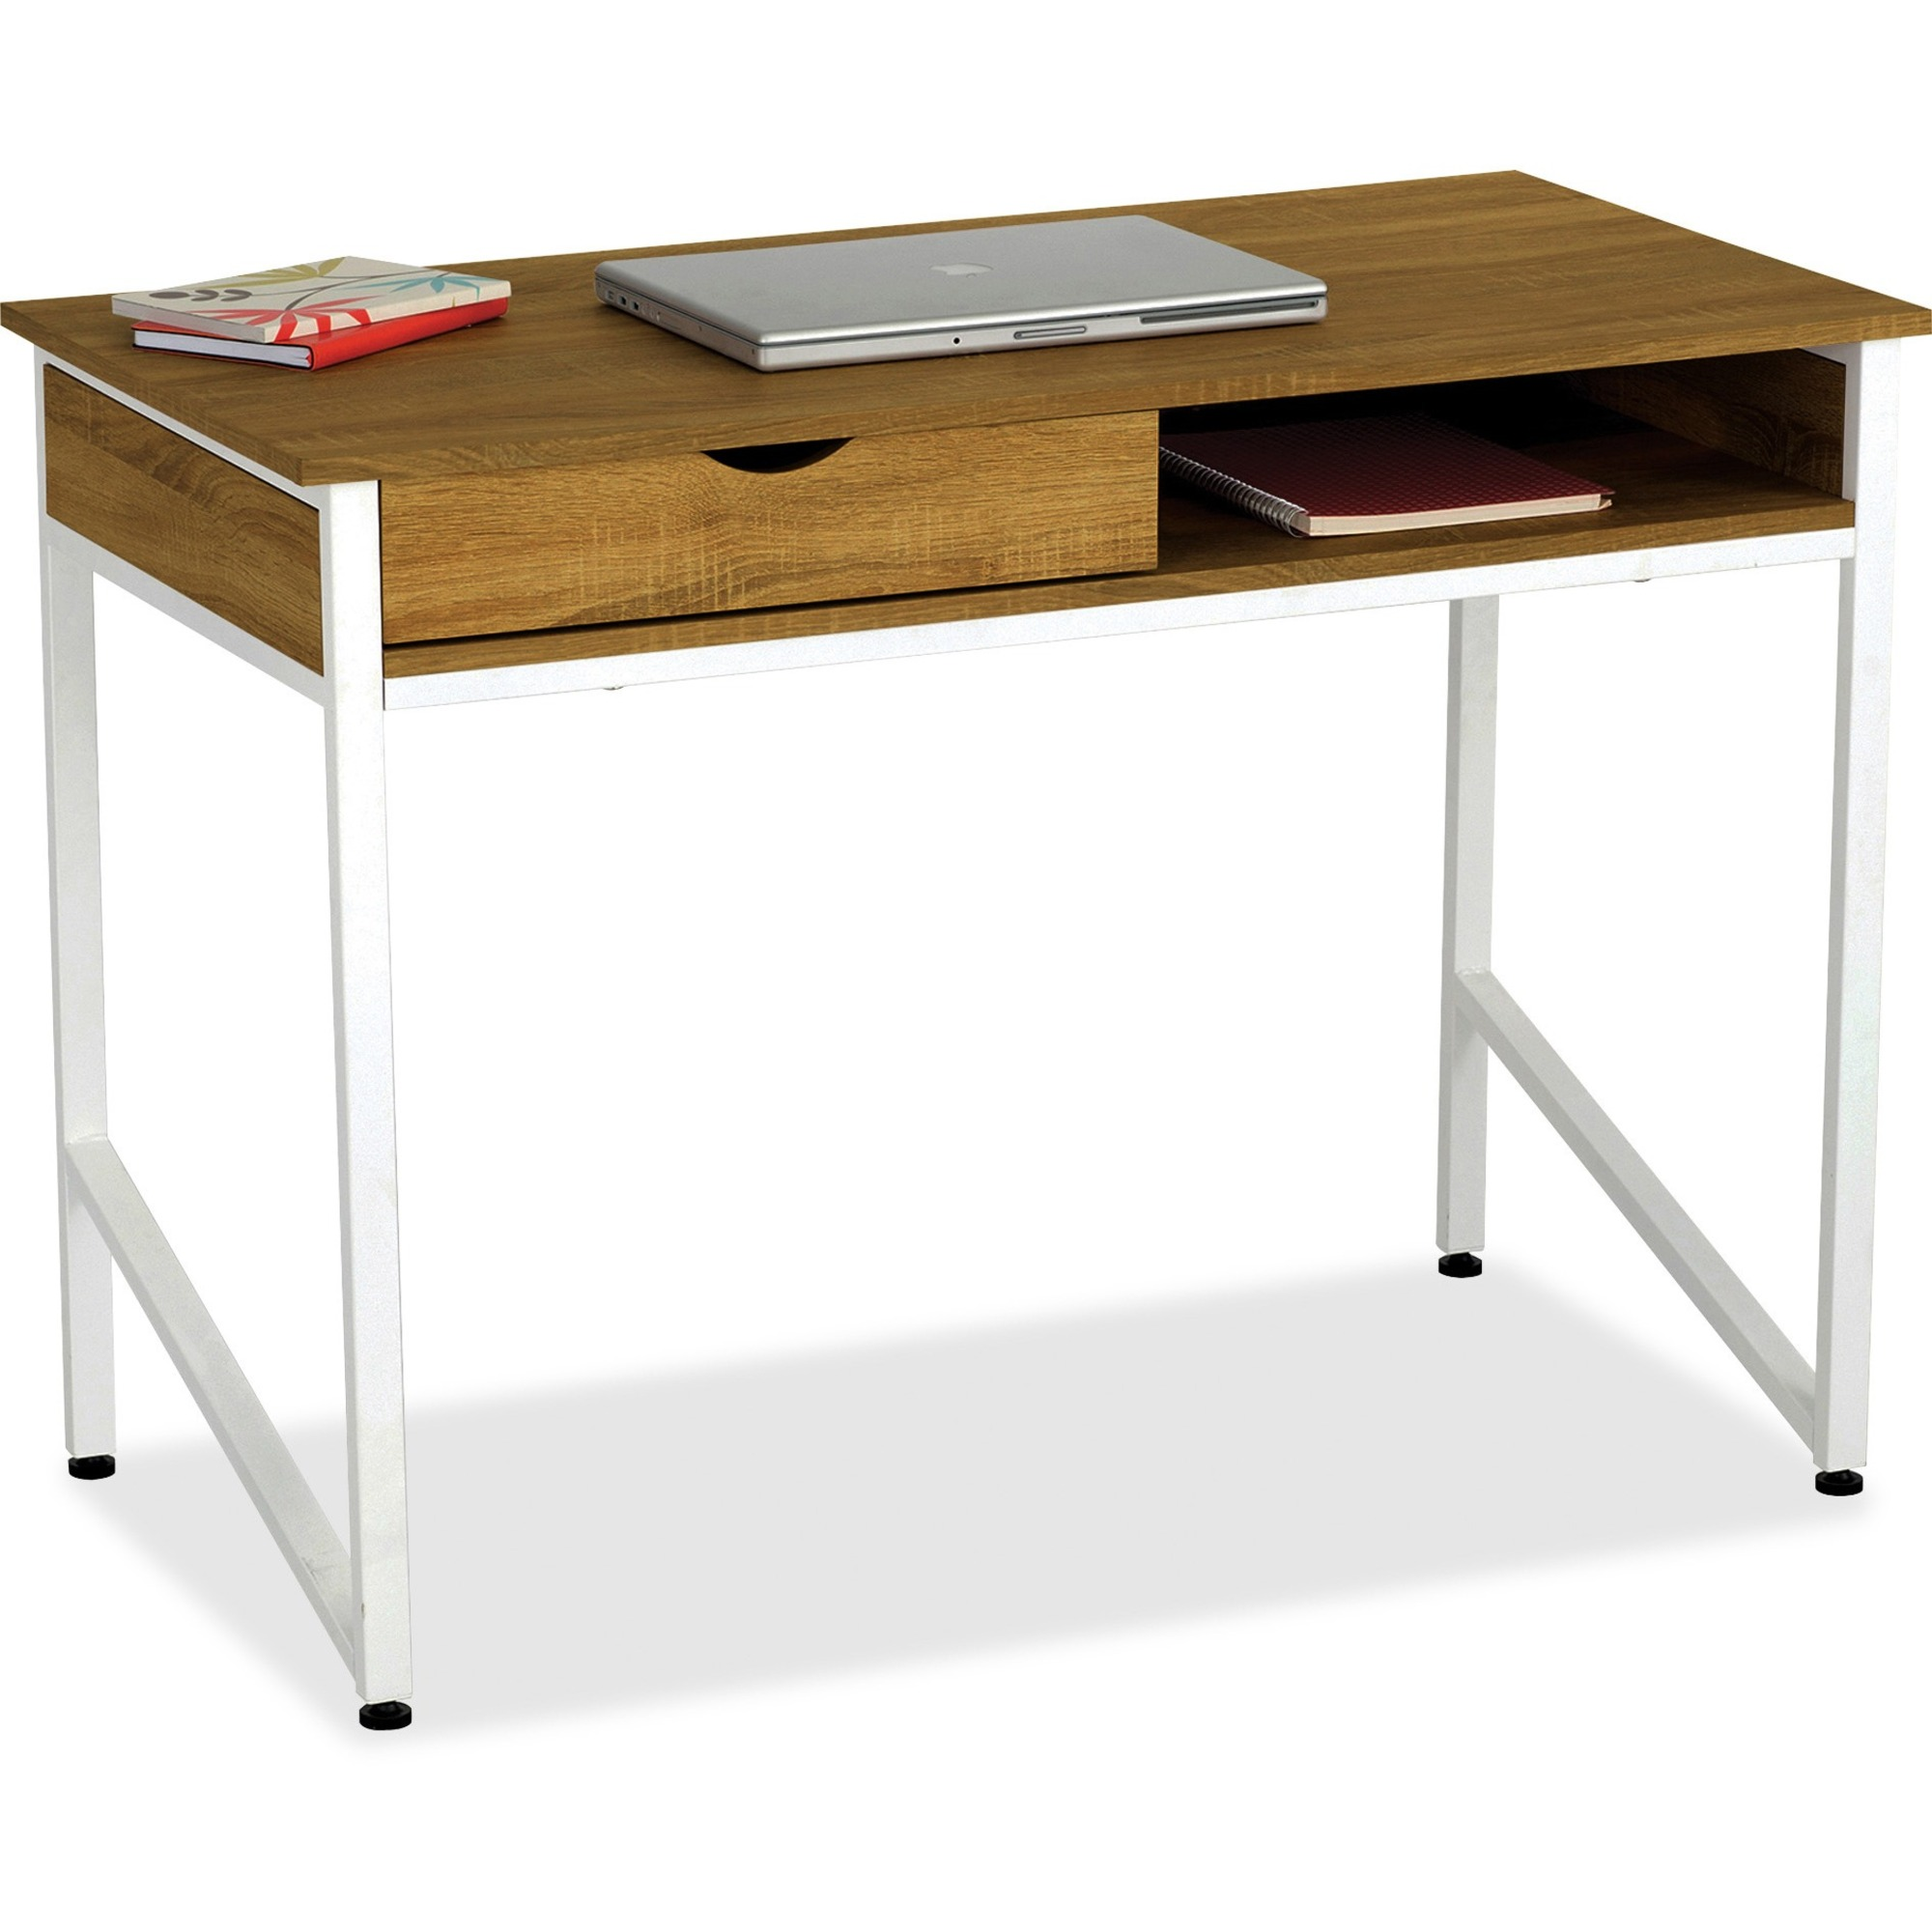 Safco Single Drawer Office Desk Rectangle Top 4 Legs 43 3 Table